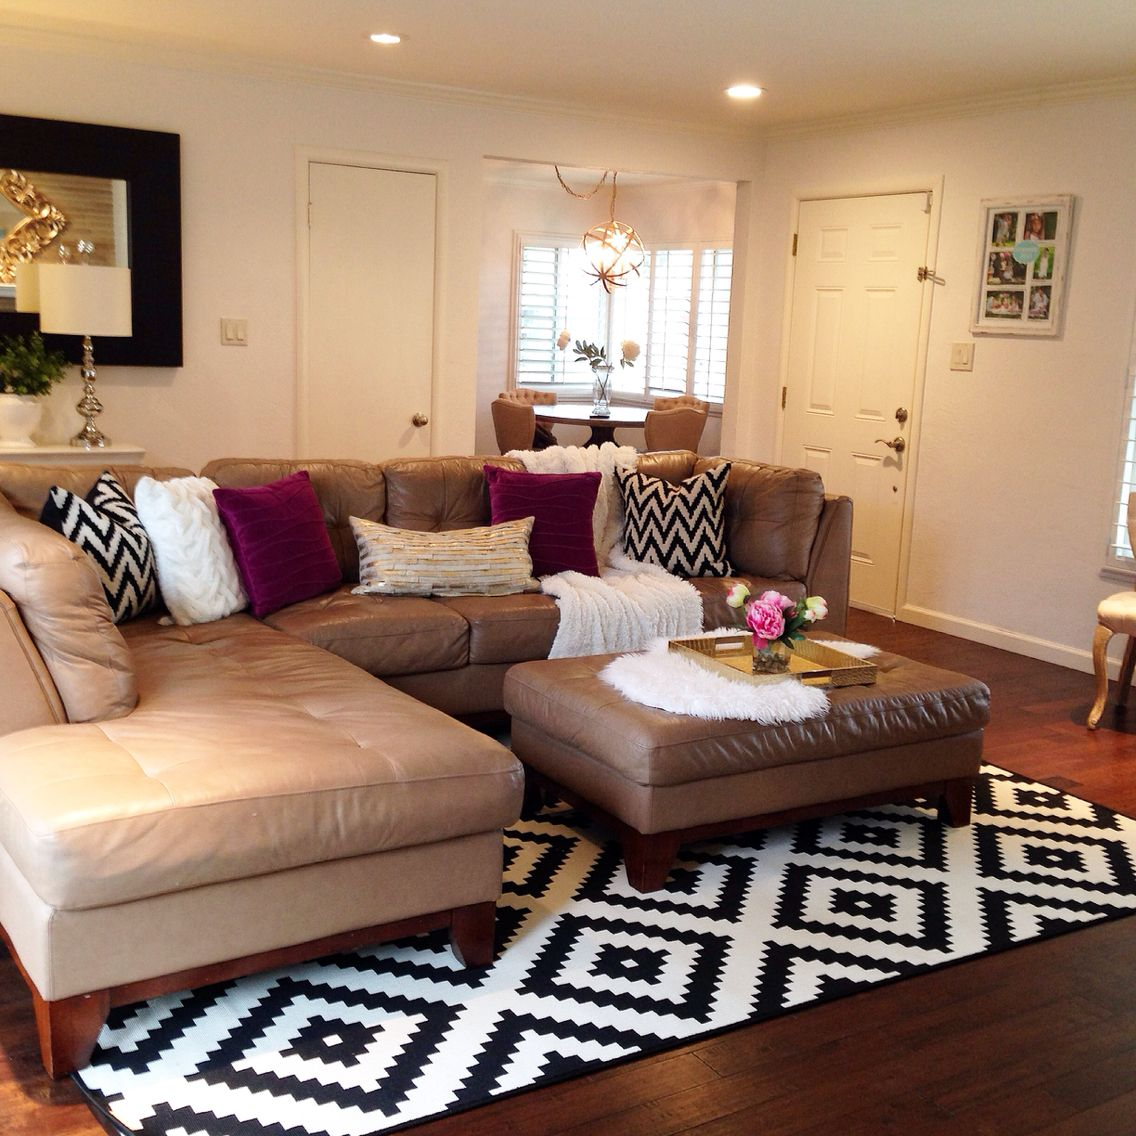 Best Black And White Area Rug In The Living Room Pops Of 400 x 300